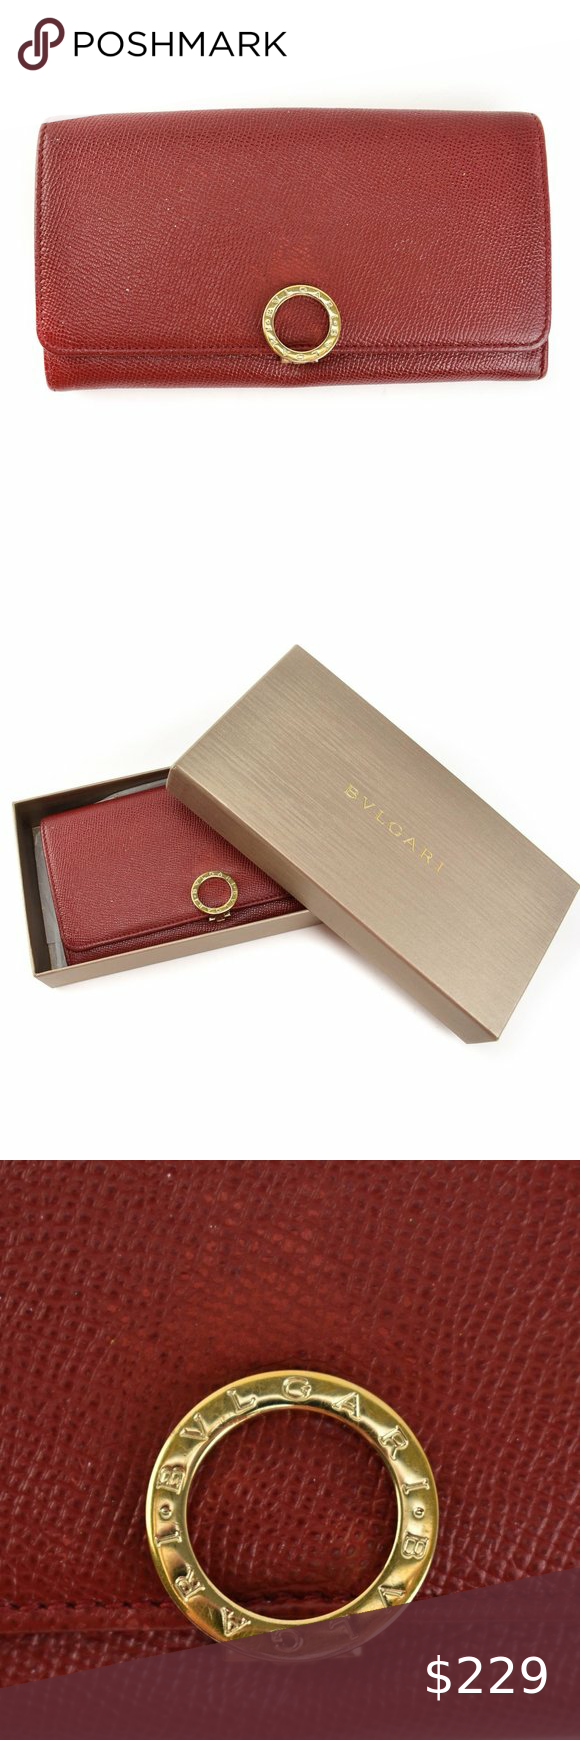 BVLGARI Red, Leather & Gold Logo Long Wallet (mn) in 2020